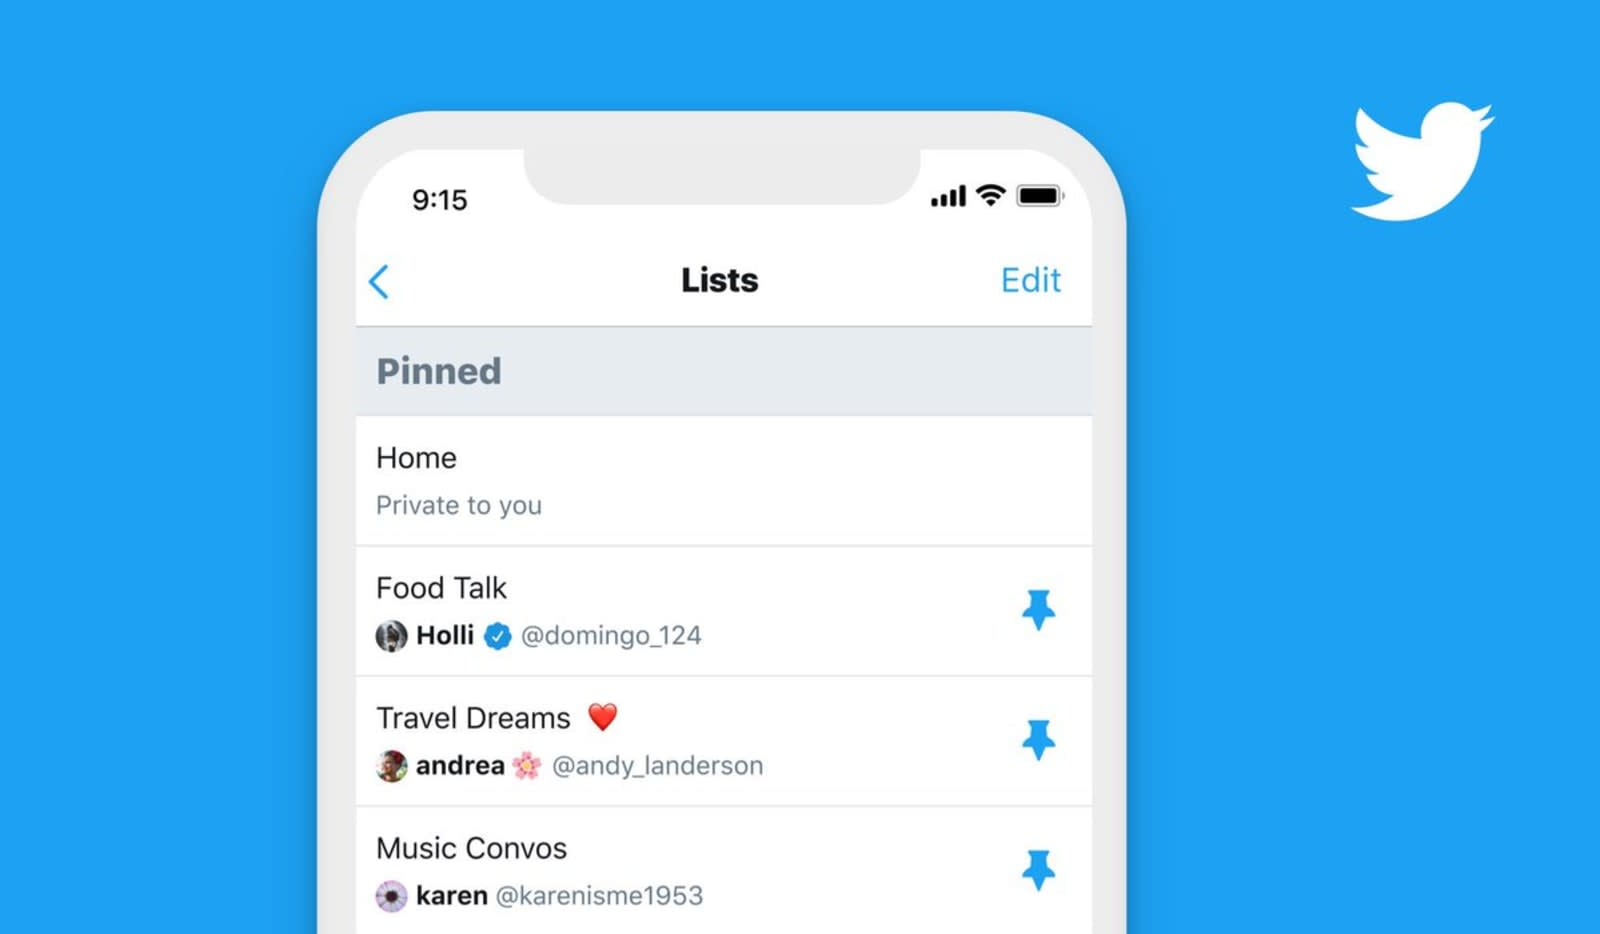 Twitter will let you pin your favorite lists in its app